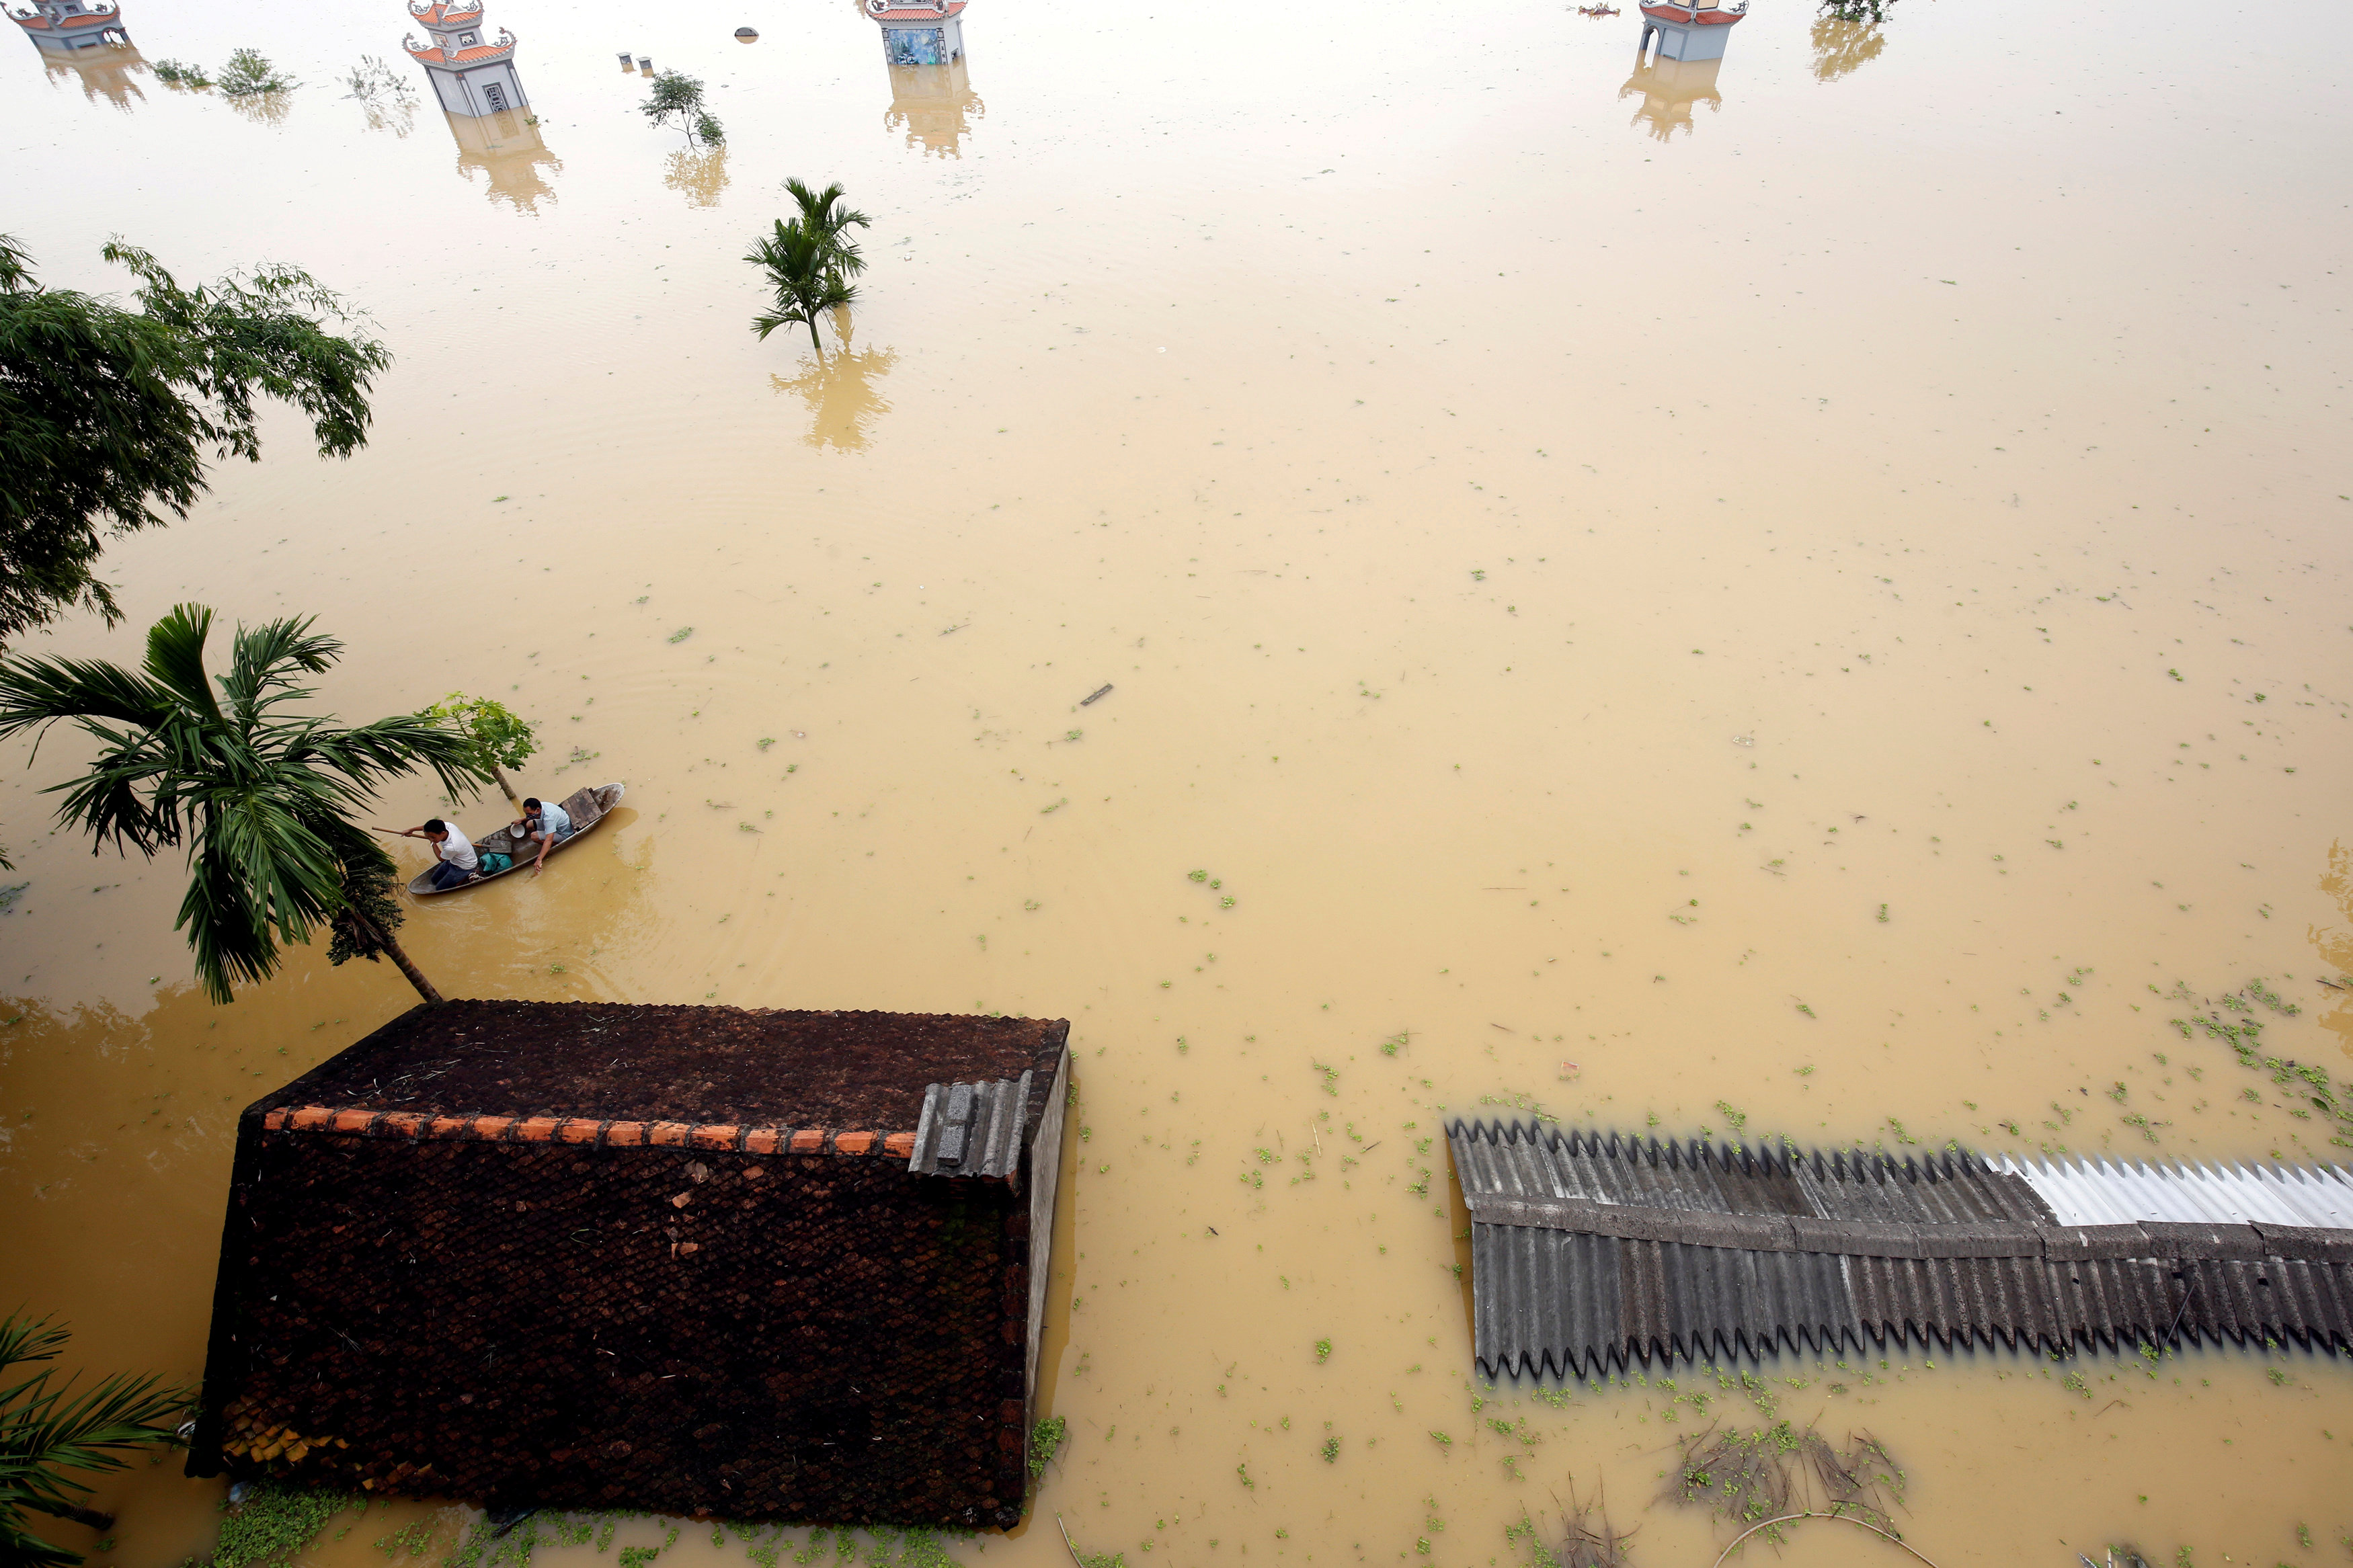 Farmers paddle in a boat at a flooded village after a tropical depression in Hanoi, Vietnam October 13, 2017. Photo: Reuters